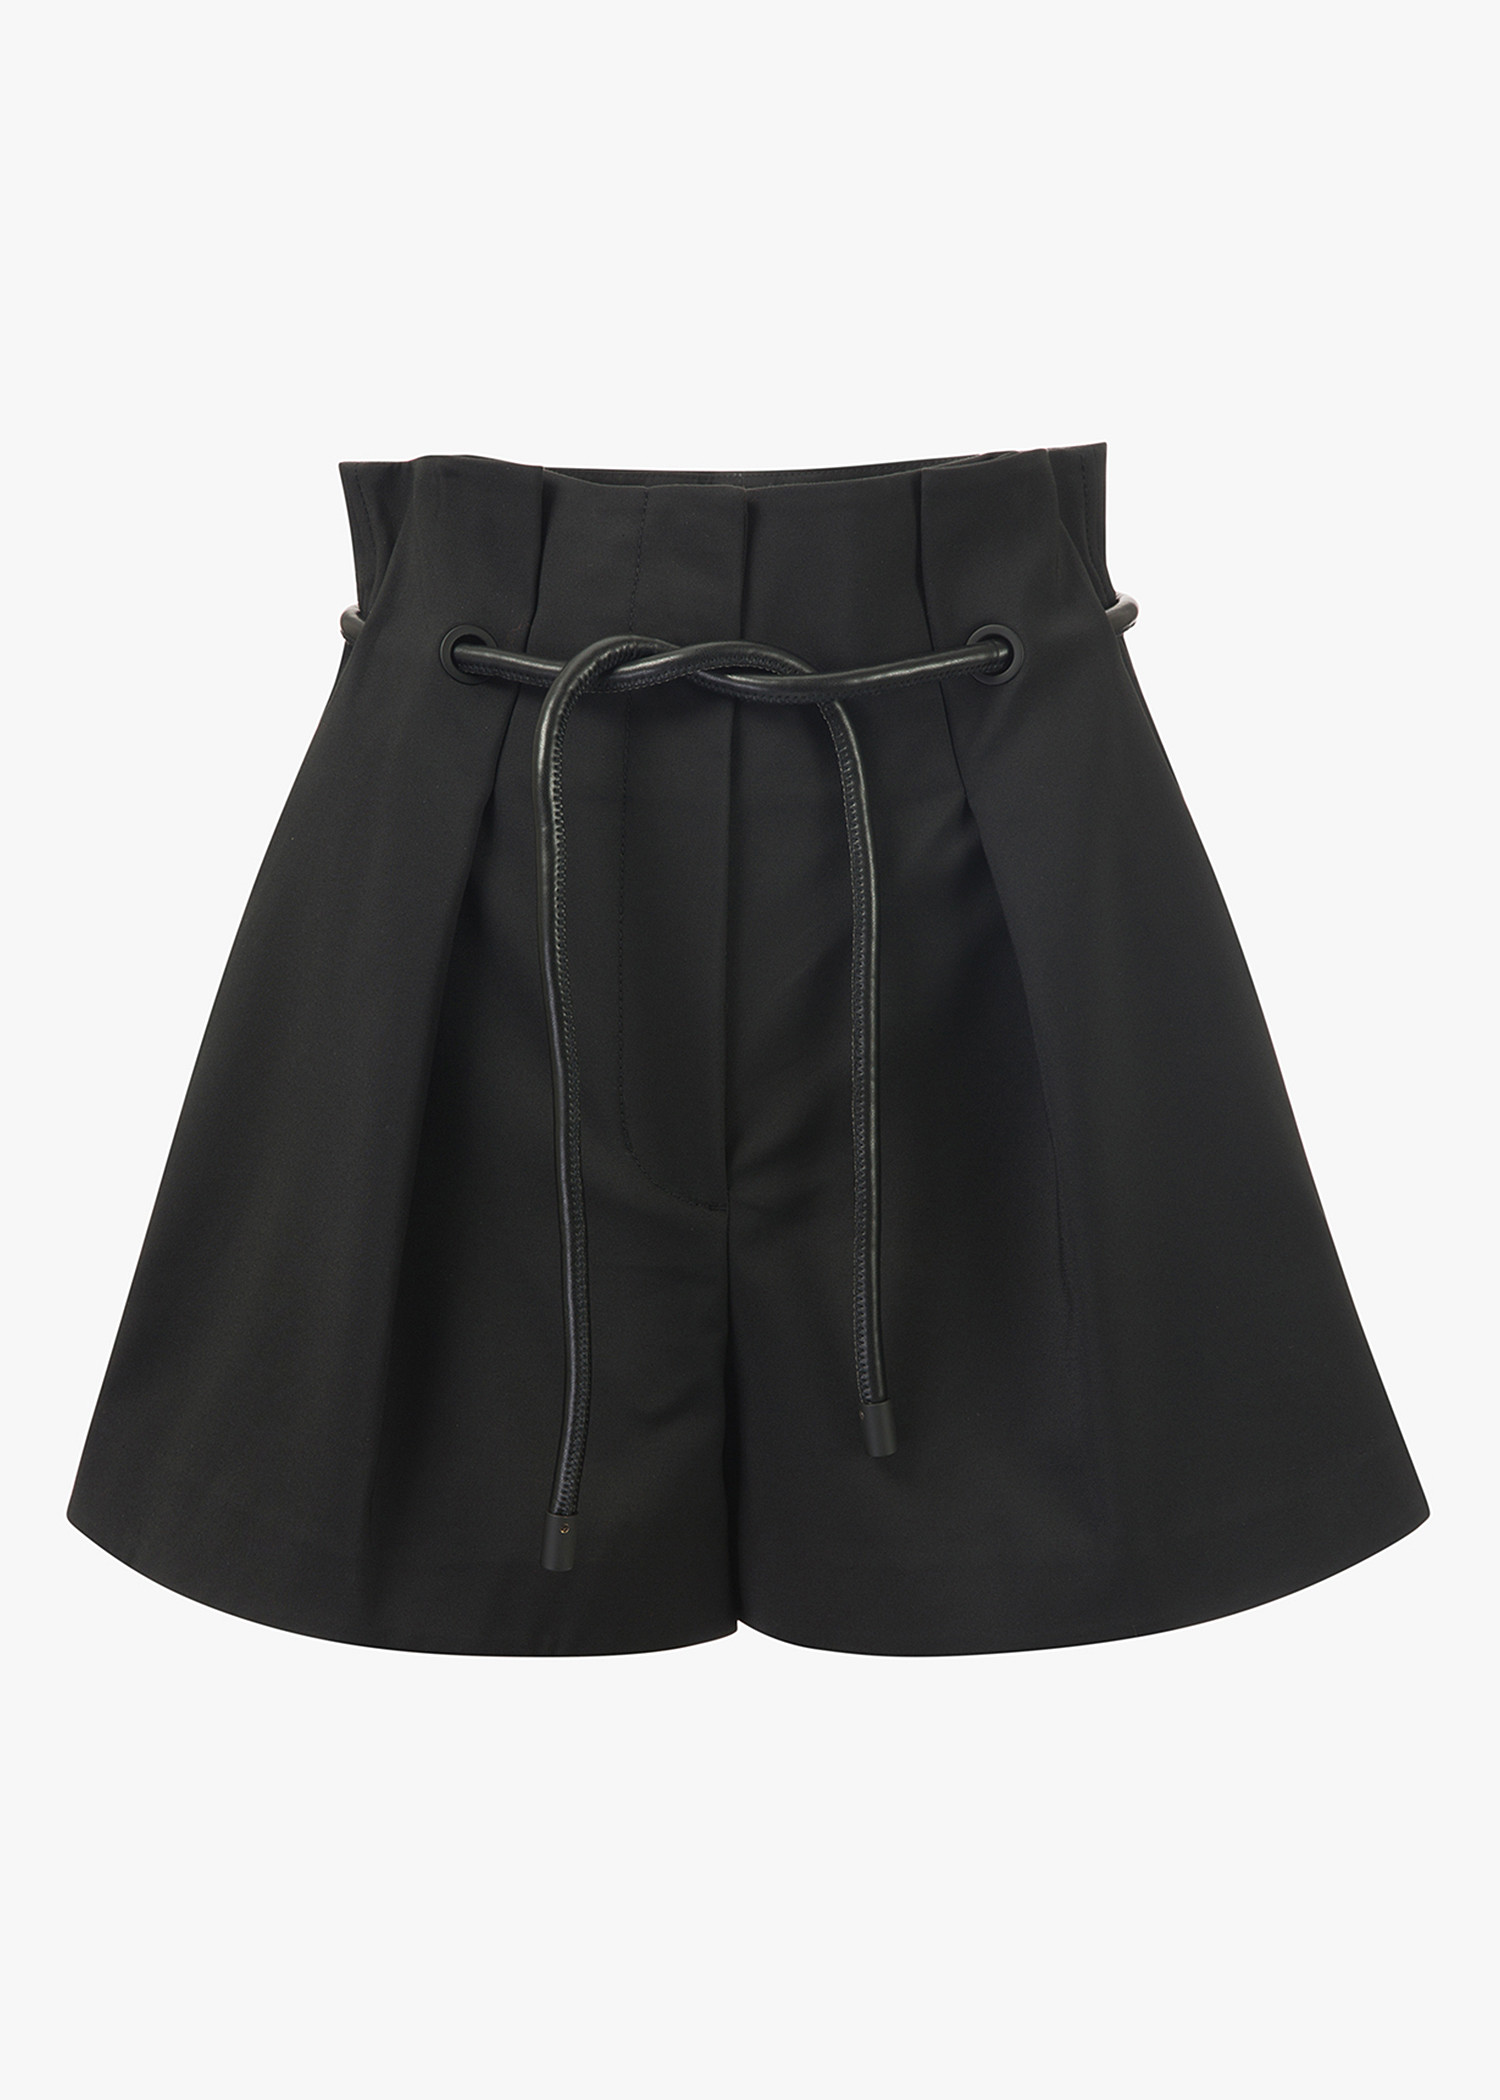 Webster Origami Pleated Shorts